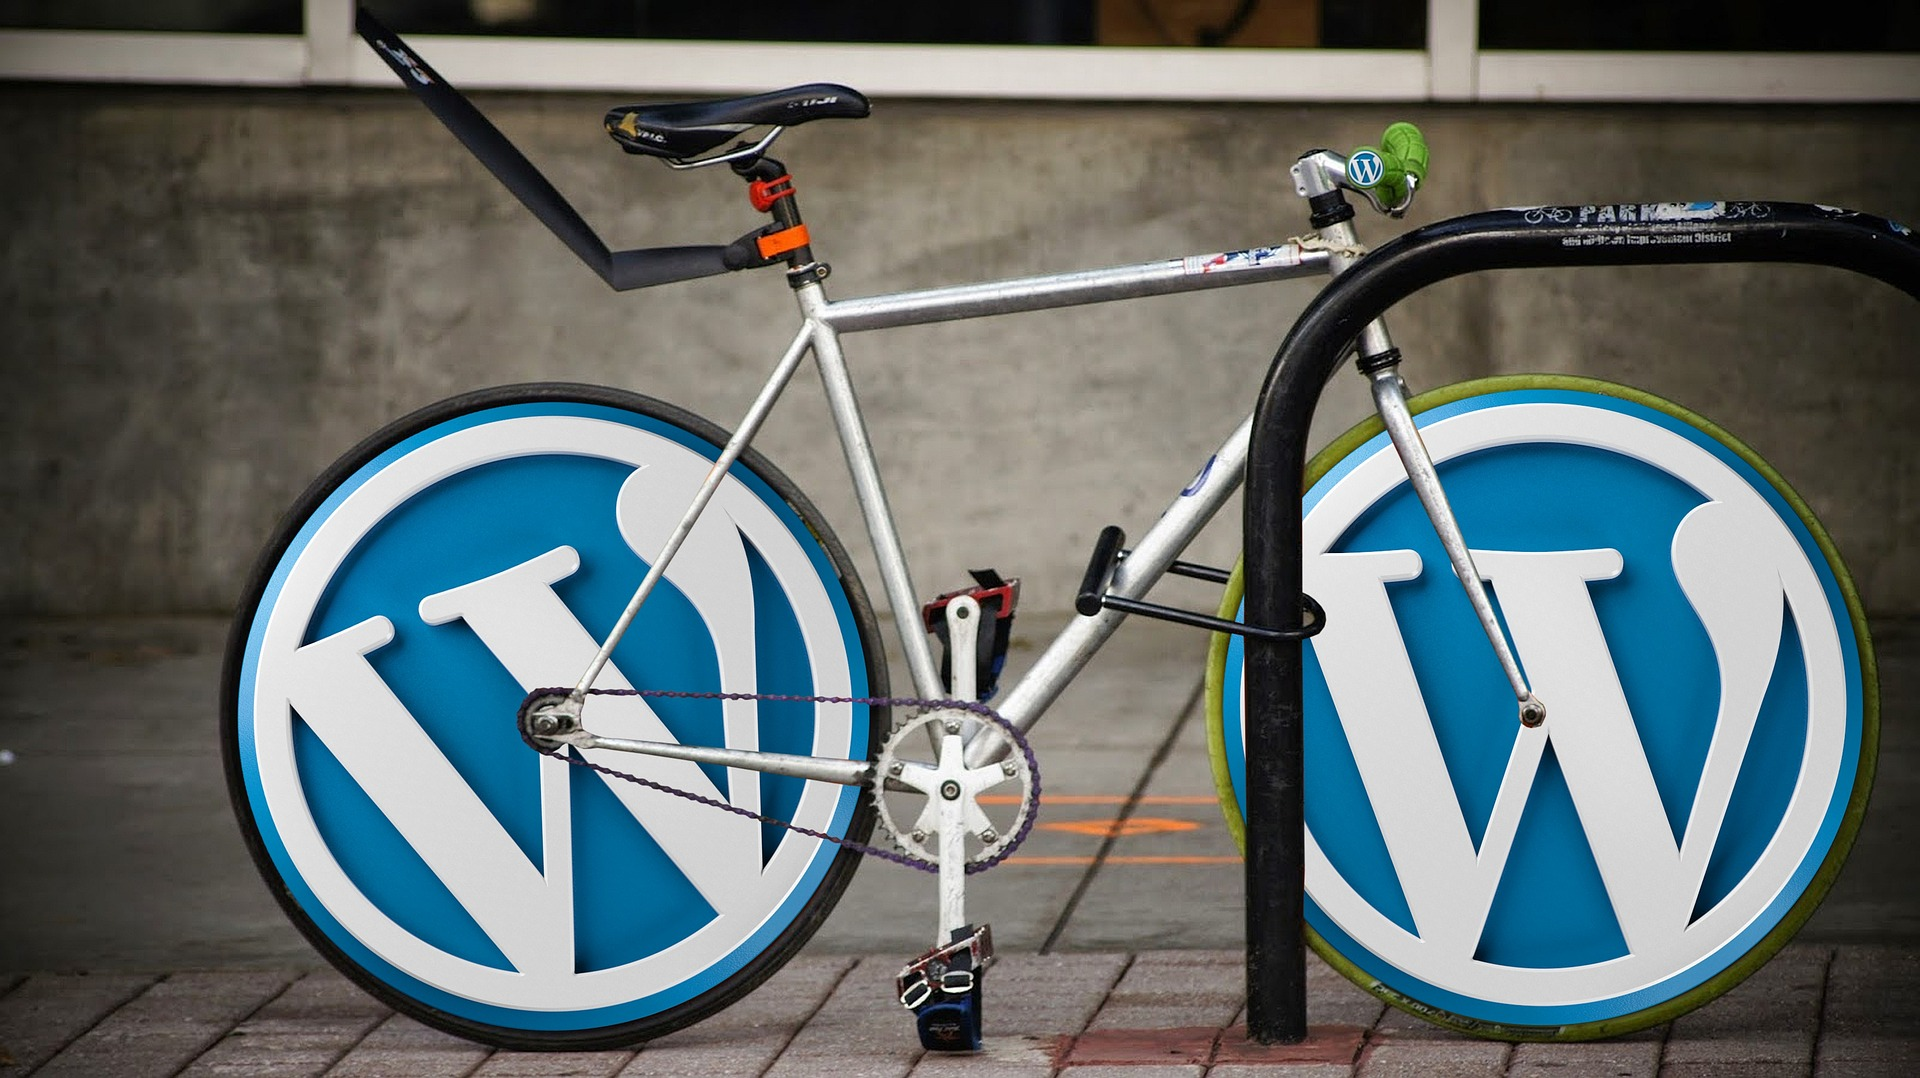 wordpress logo on bike tires